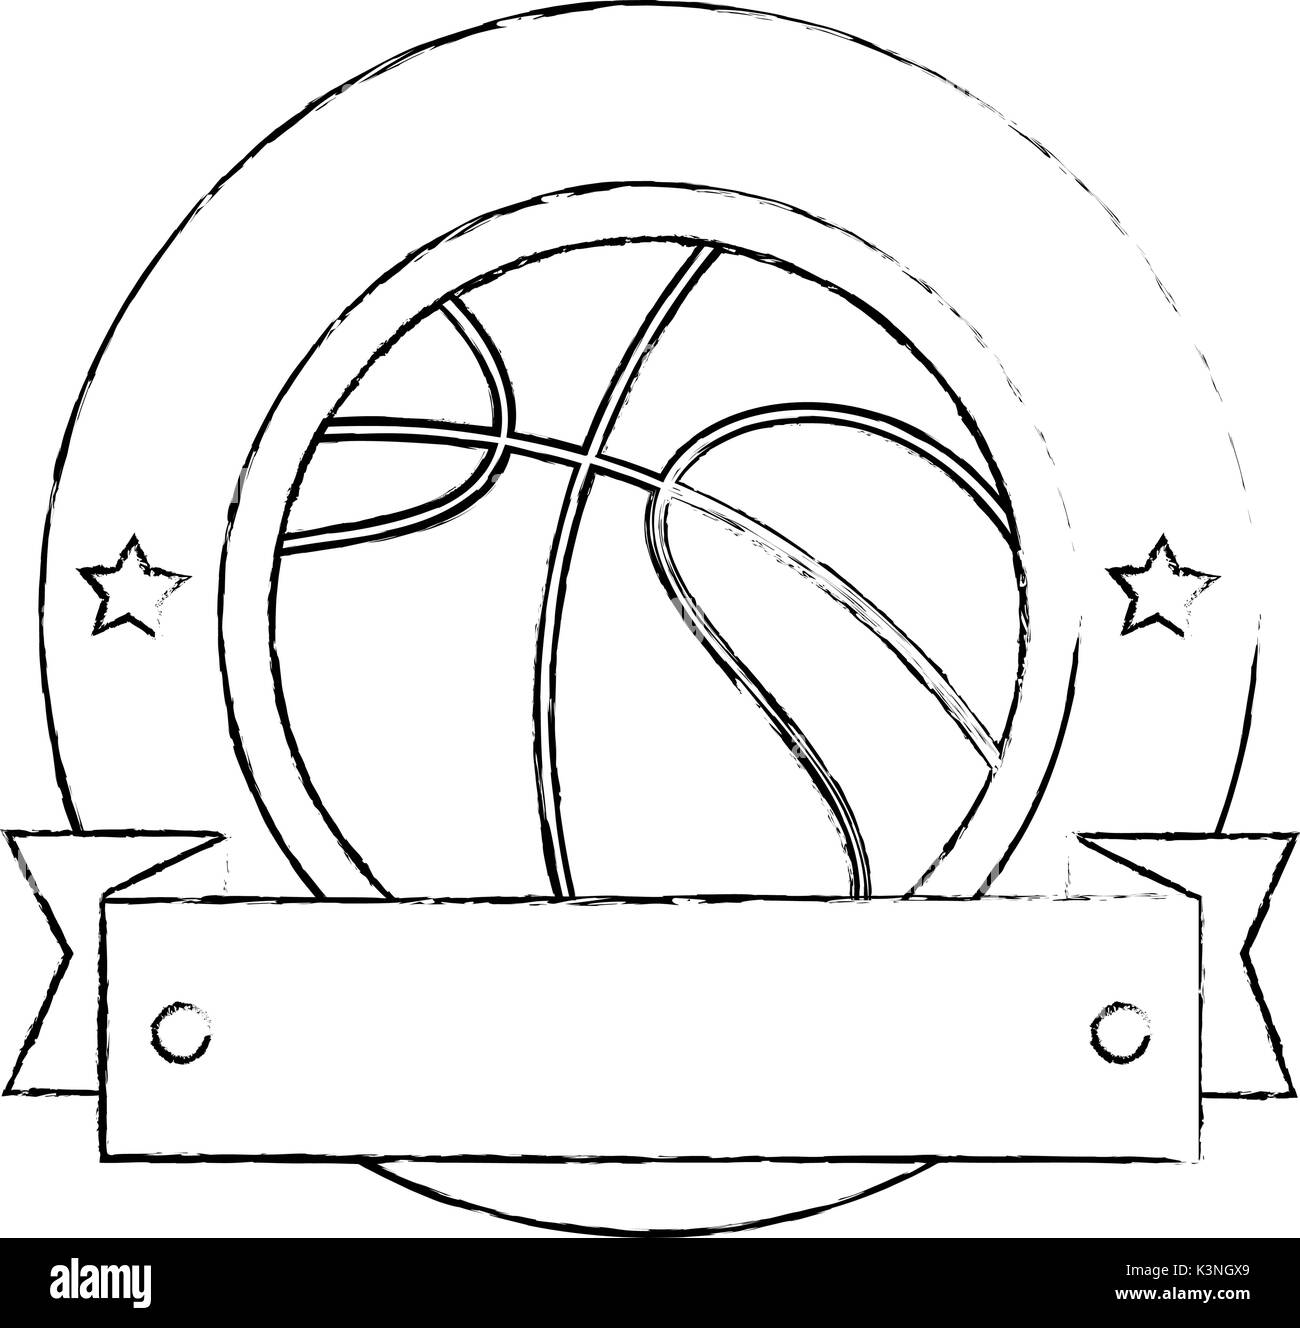 Basketball ball emblem icon vector illustration graphic design - Stock Image